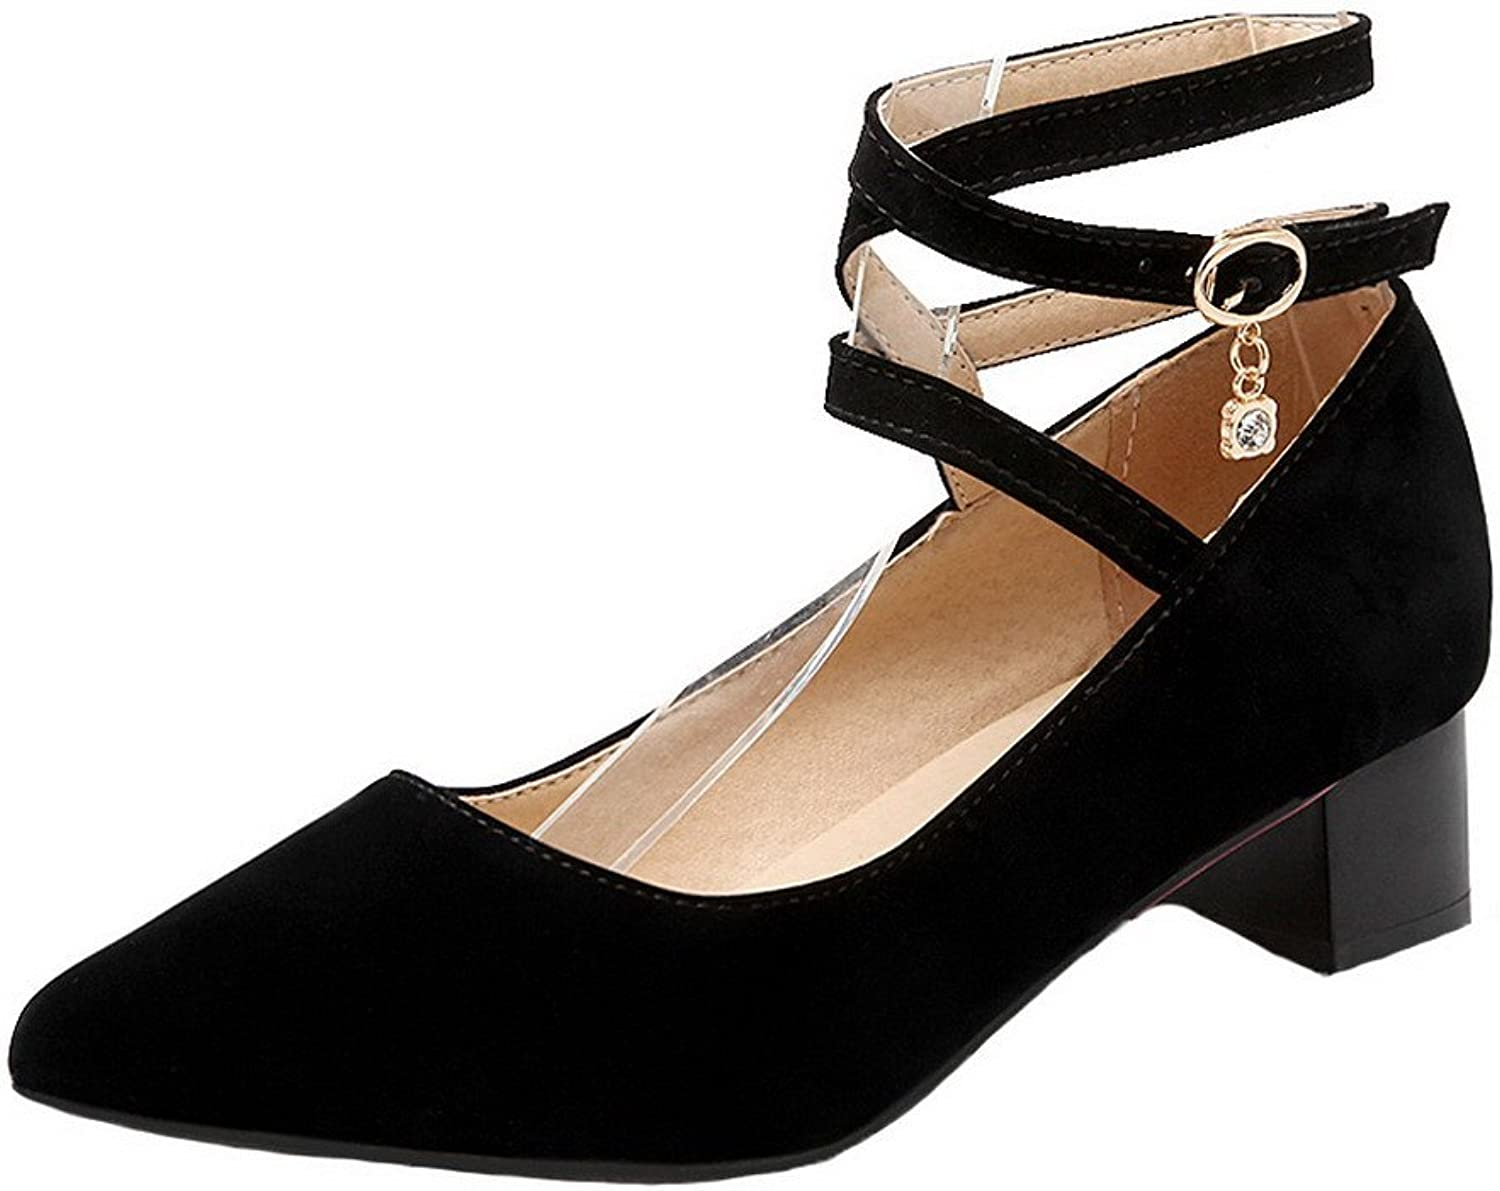 AllhqFashion Women's Kitten-Heels Solid Buckle Frosted Closed-Toe Pumps-shoes